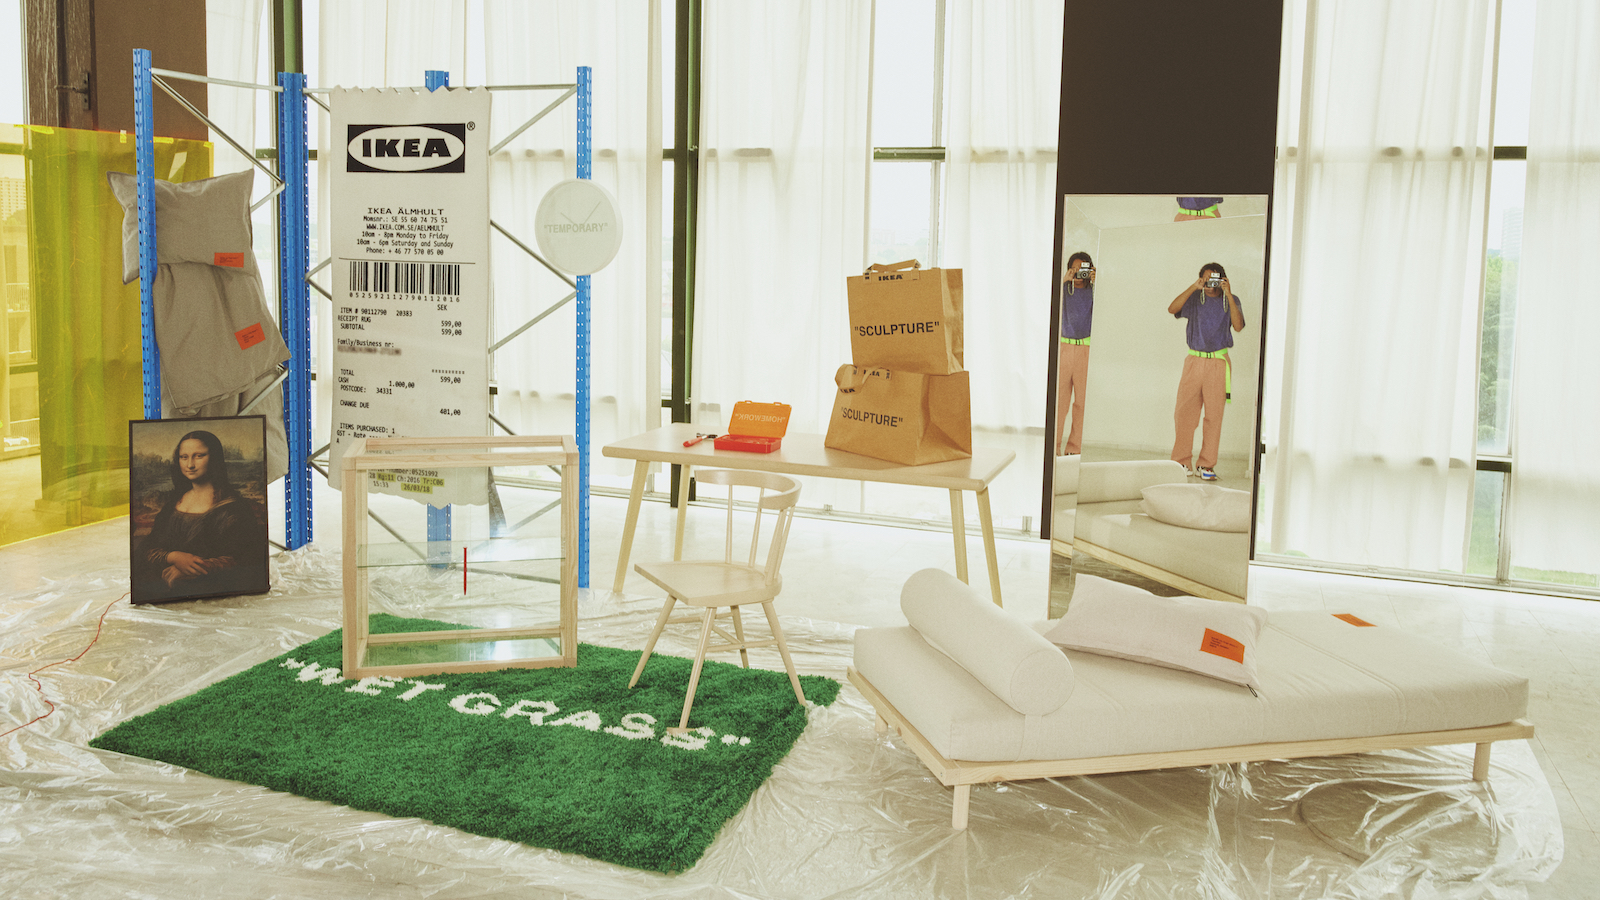 """A group of furniture and decor items, including a green rug that says """"Wetgrass"""" and a rug made to look like a shopping receipt."""